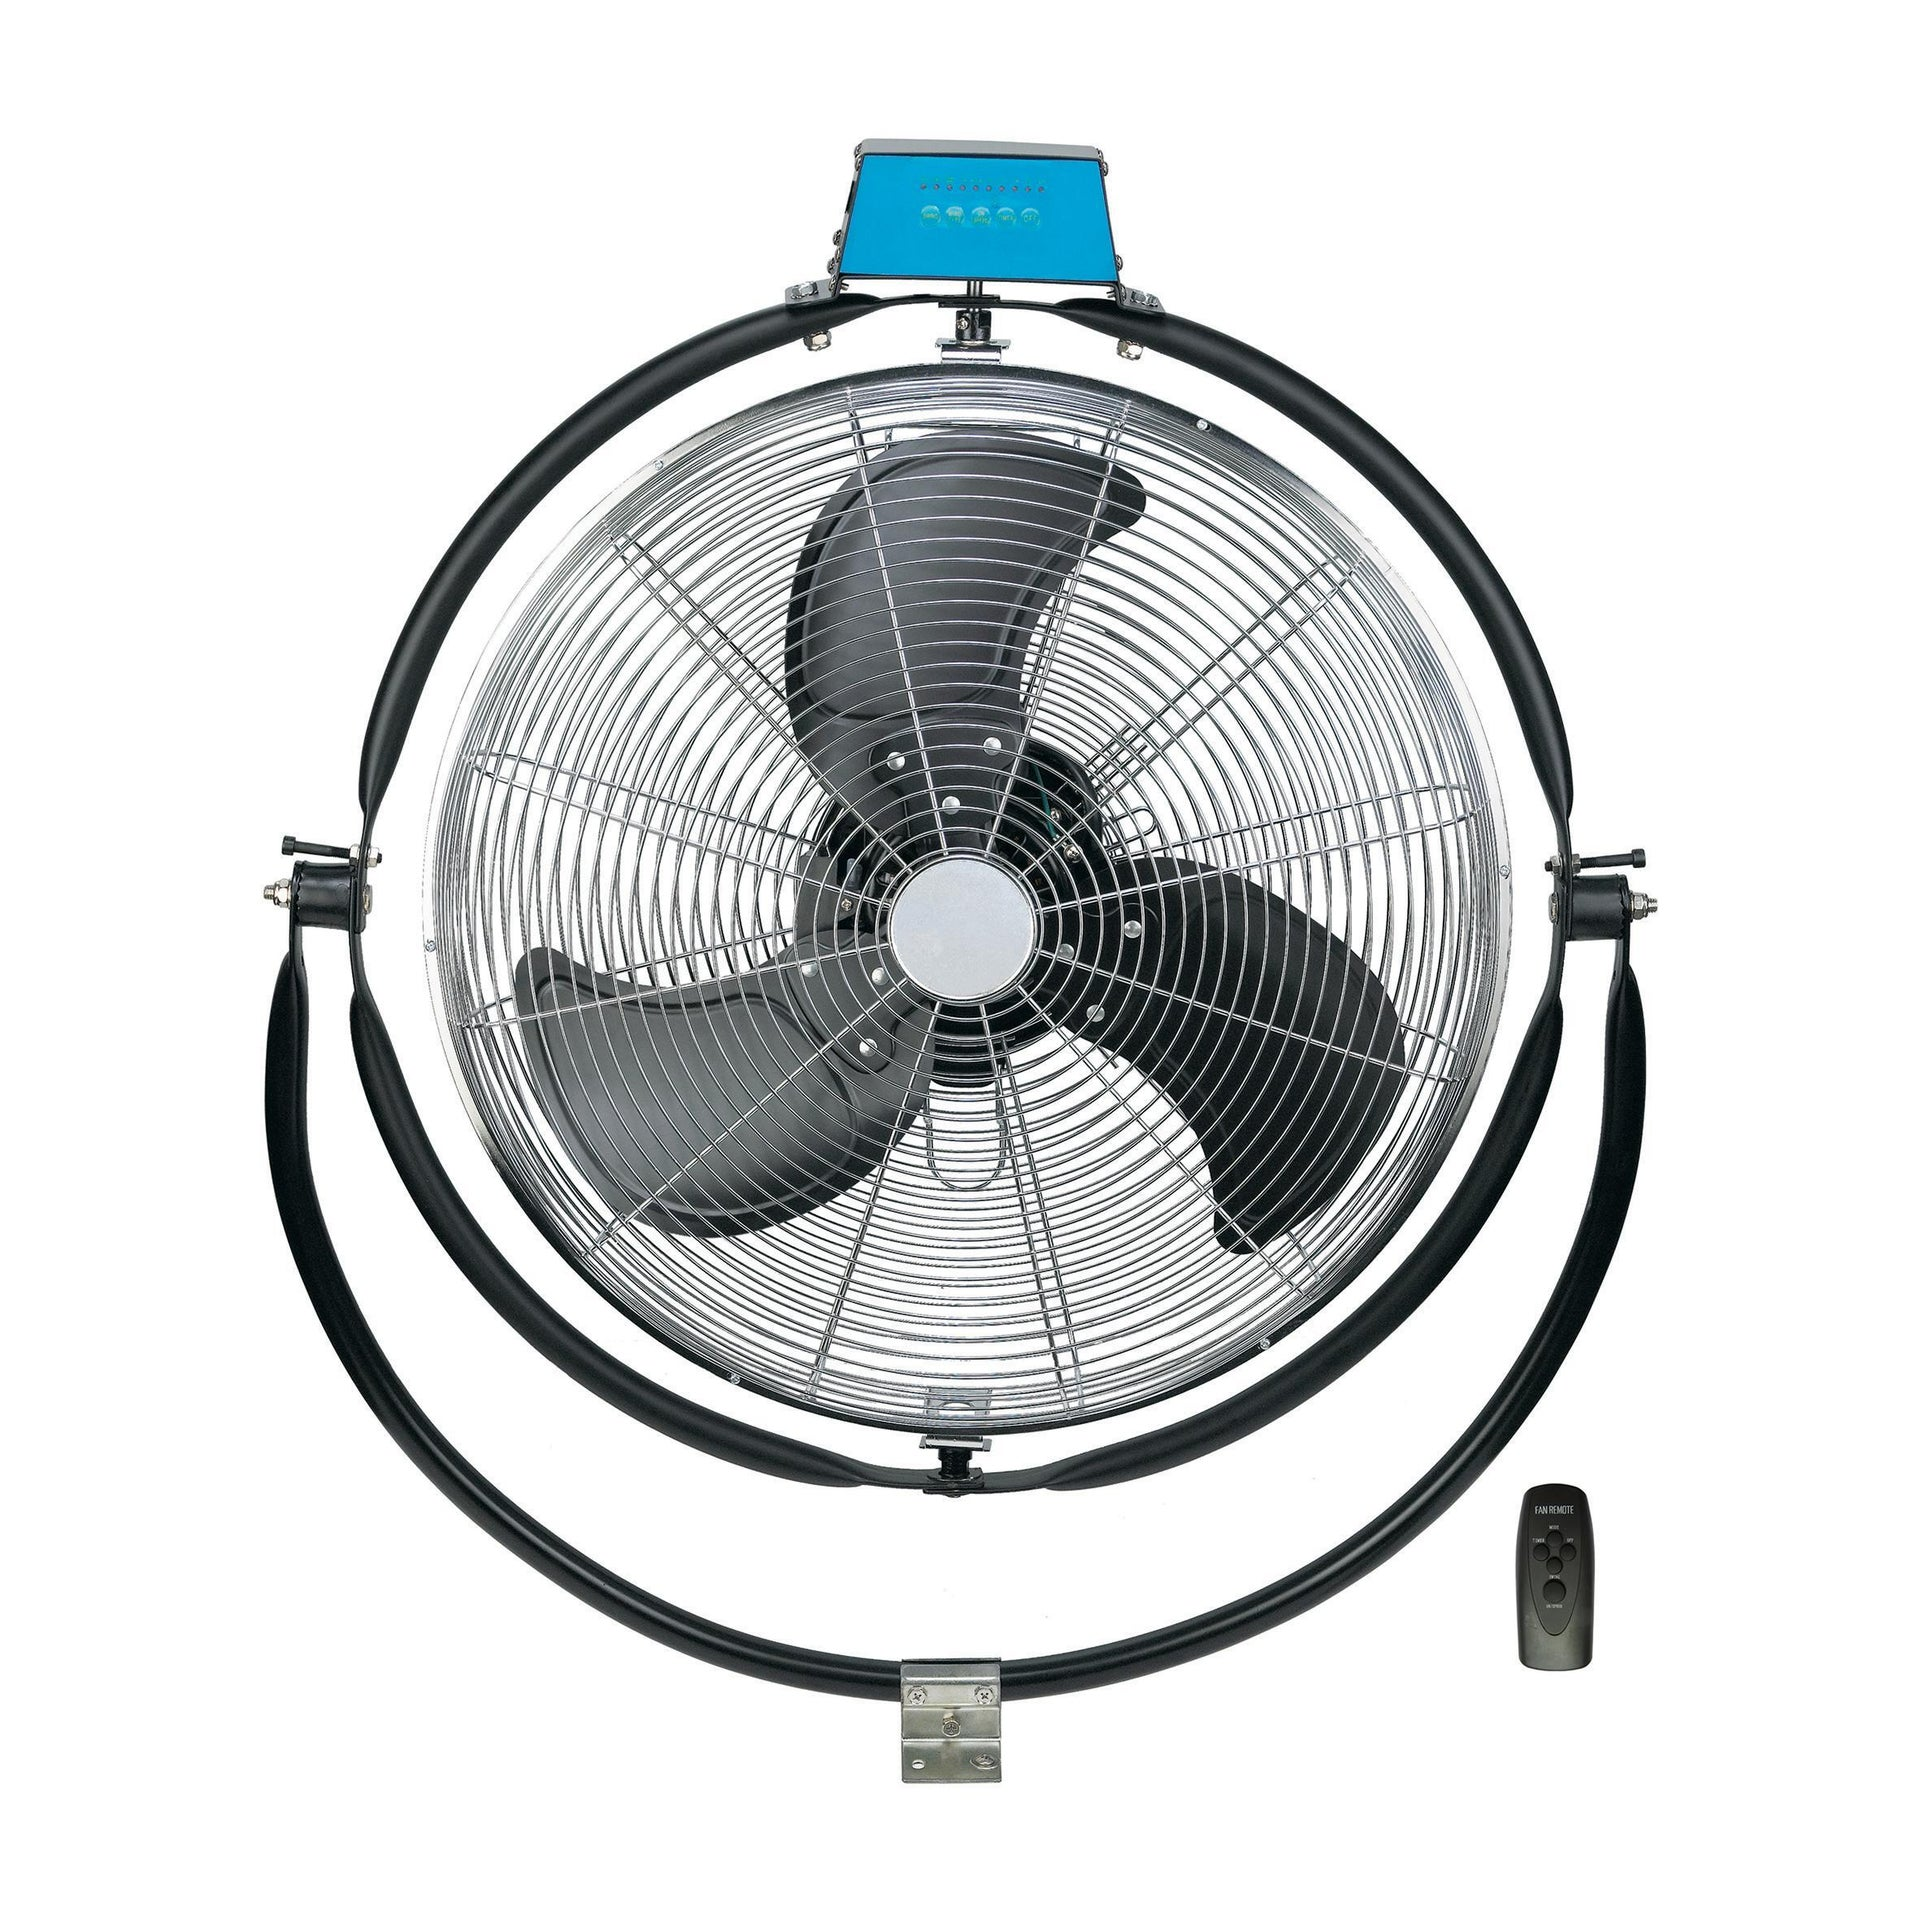 Ventilatore a parete EQUATION SFW1A500BOWRC cromo silver 111 W Ø 50 cm - 1